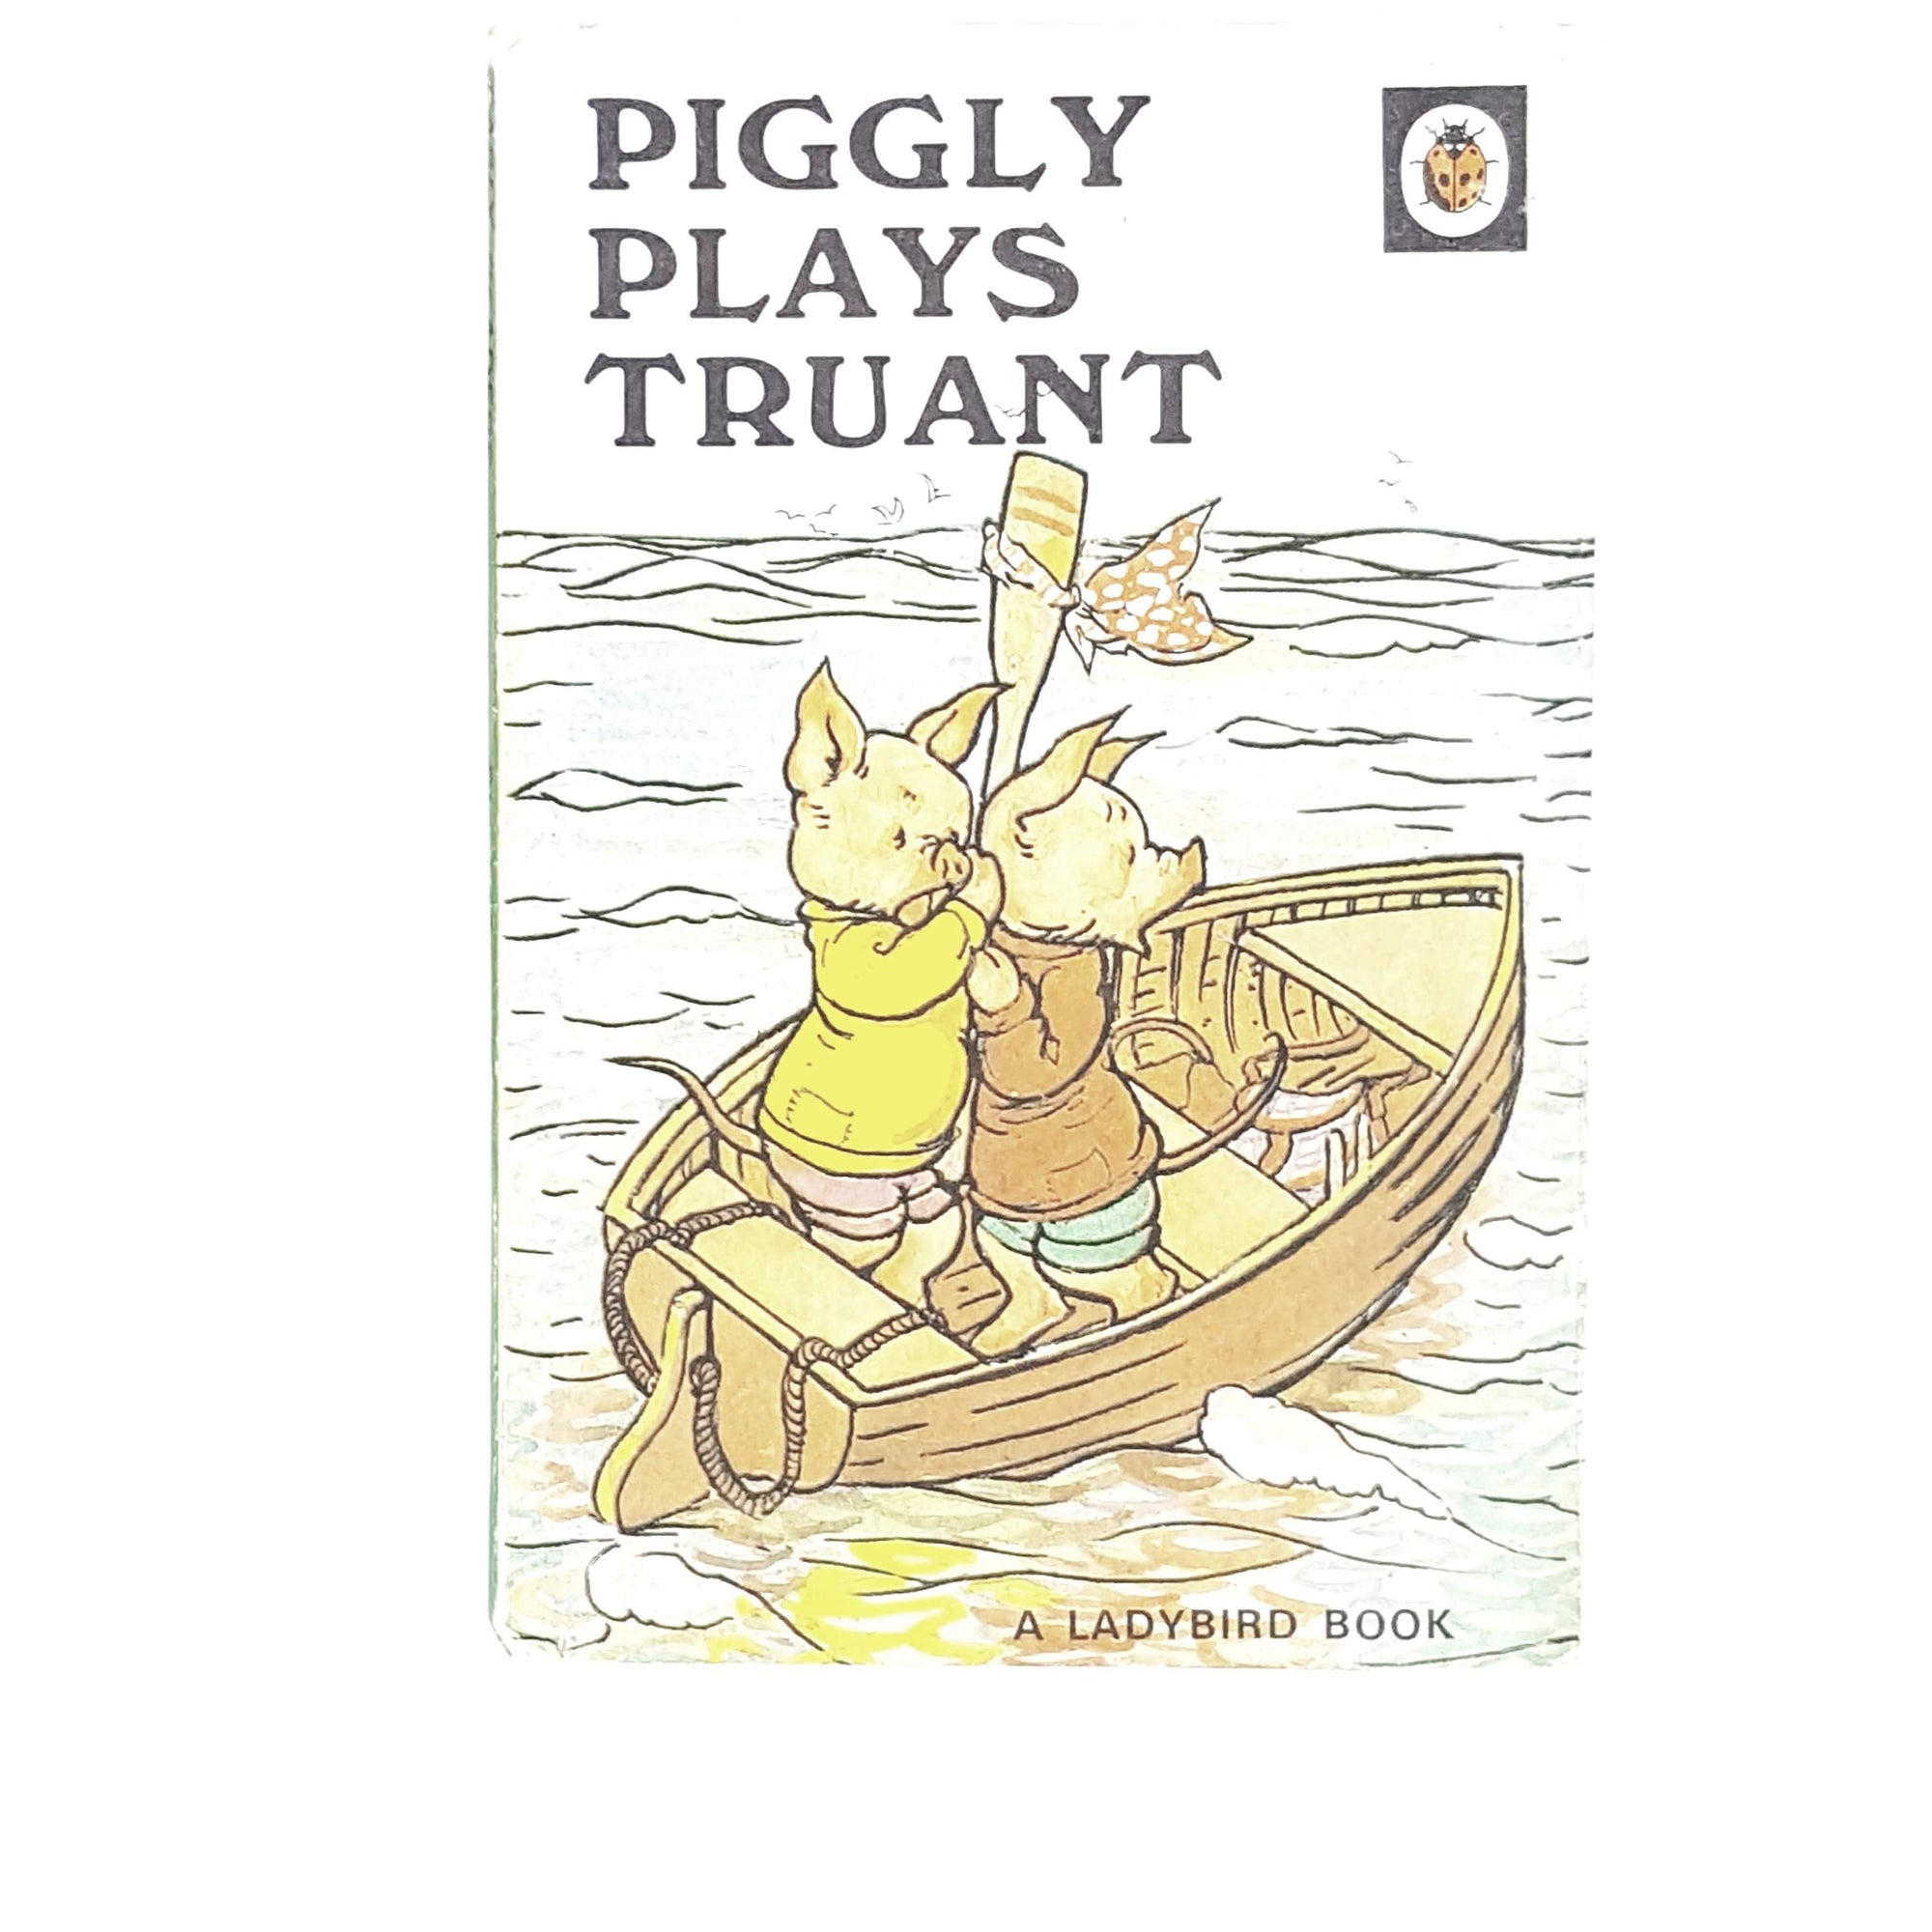 vintage-ladybird-fiction-piggly-plays-truant-1947-antique-kindergarten-books-country-house-library